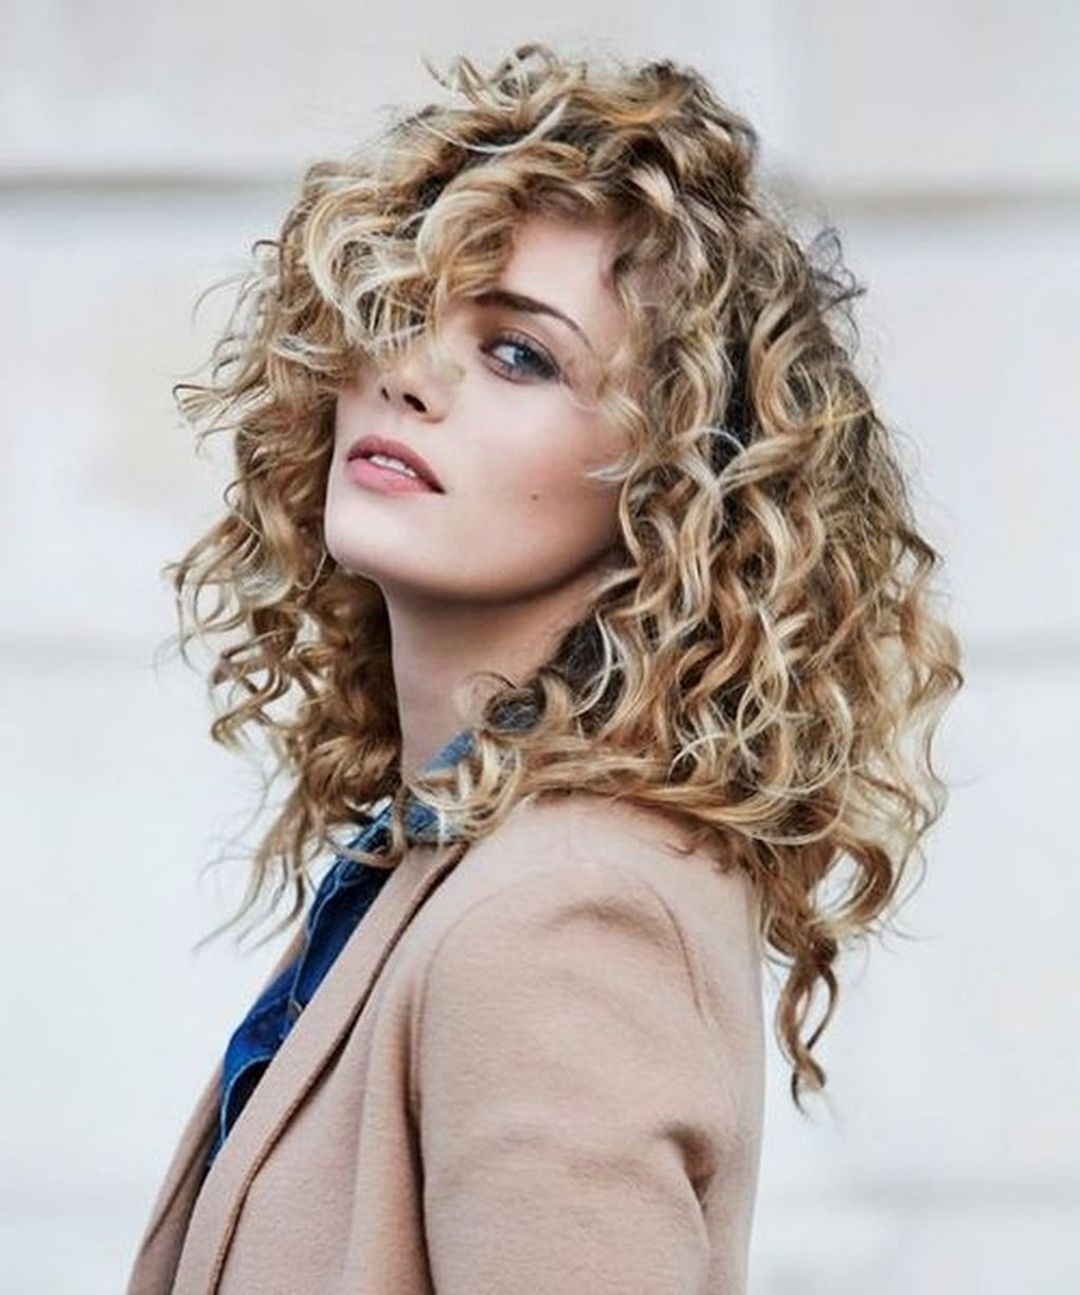 15 Chic Curly Hairstyles To Make You Look More Charming Fashions Nowadays Mid Length Curly Hairstyles Curly Hair Styles Naturally Curly Hair Styles